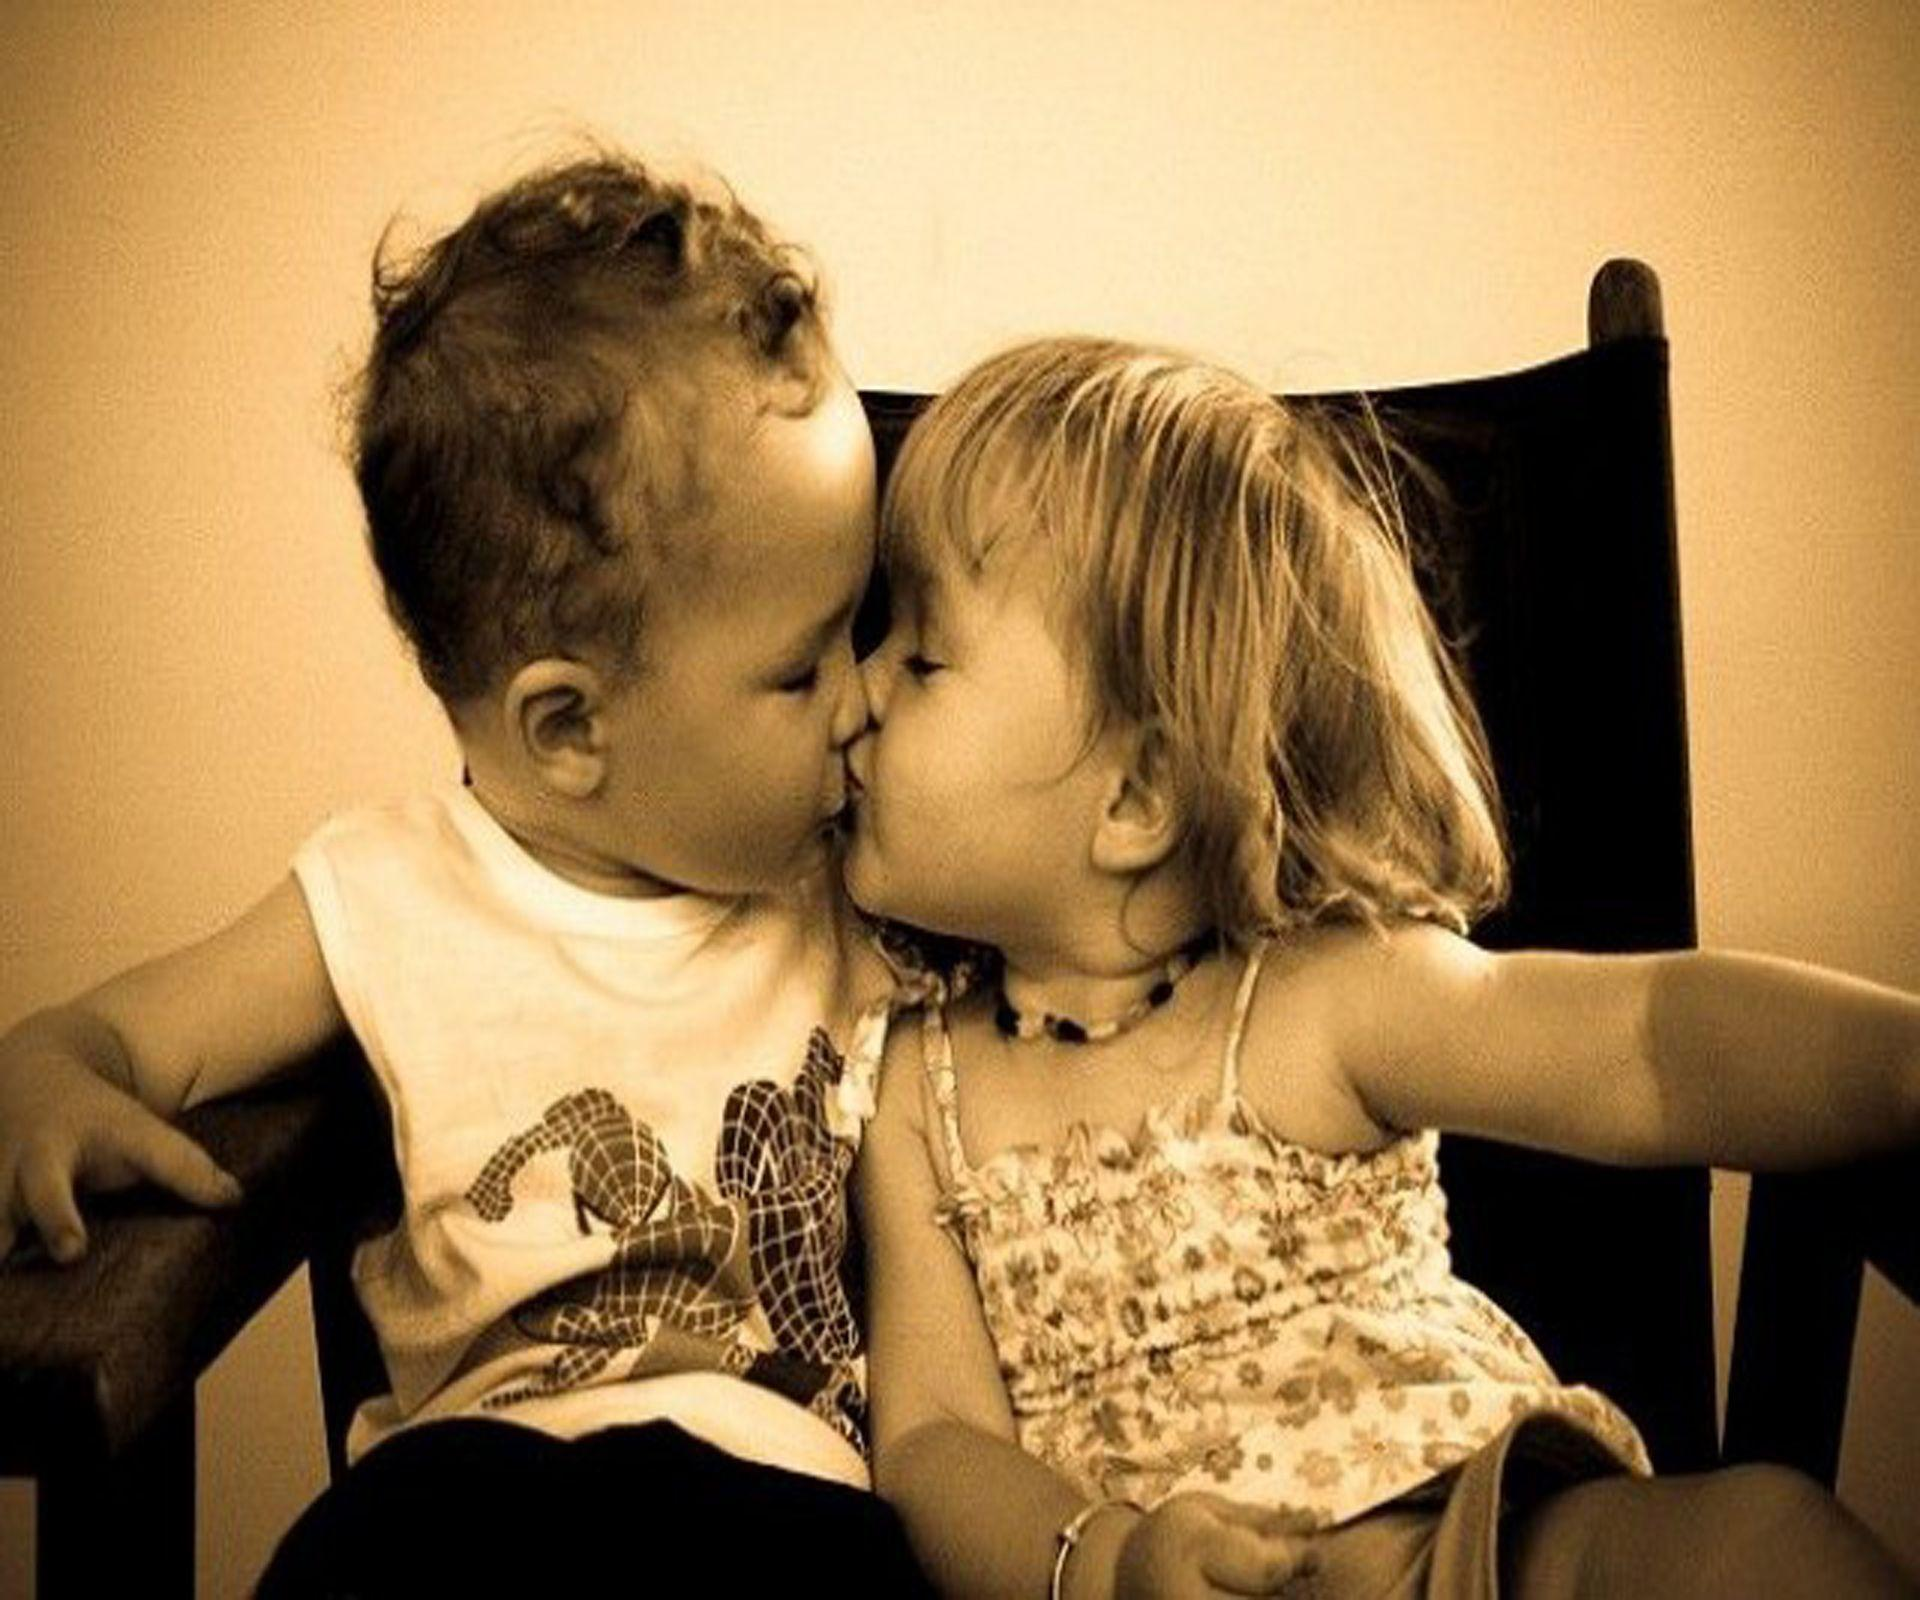 Loving Boy And Girl Hd Wallpapers Kissing Wallpapers Hd 2017 Wallpaper Cave